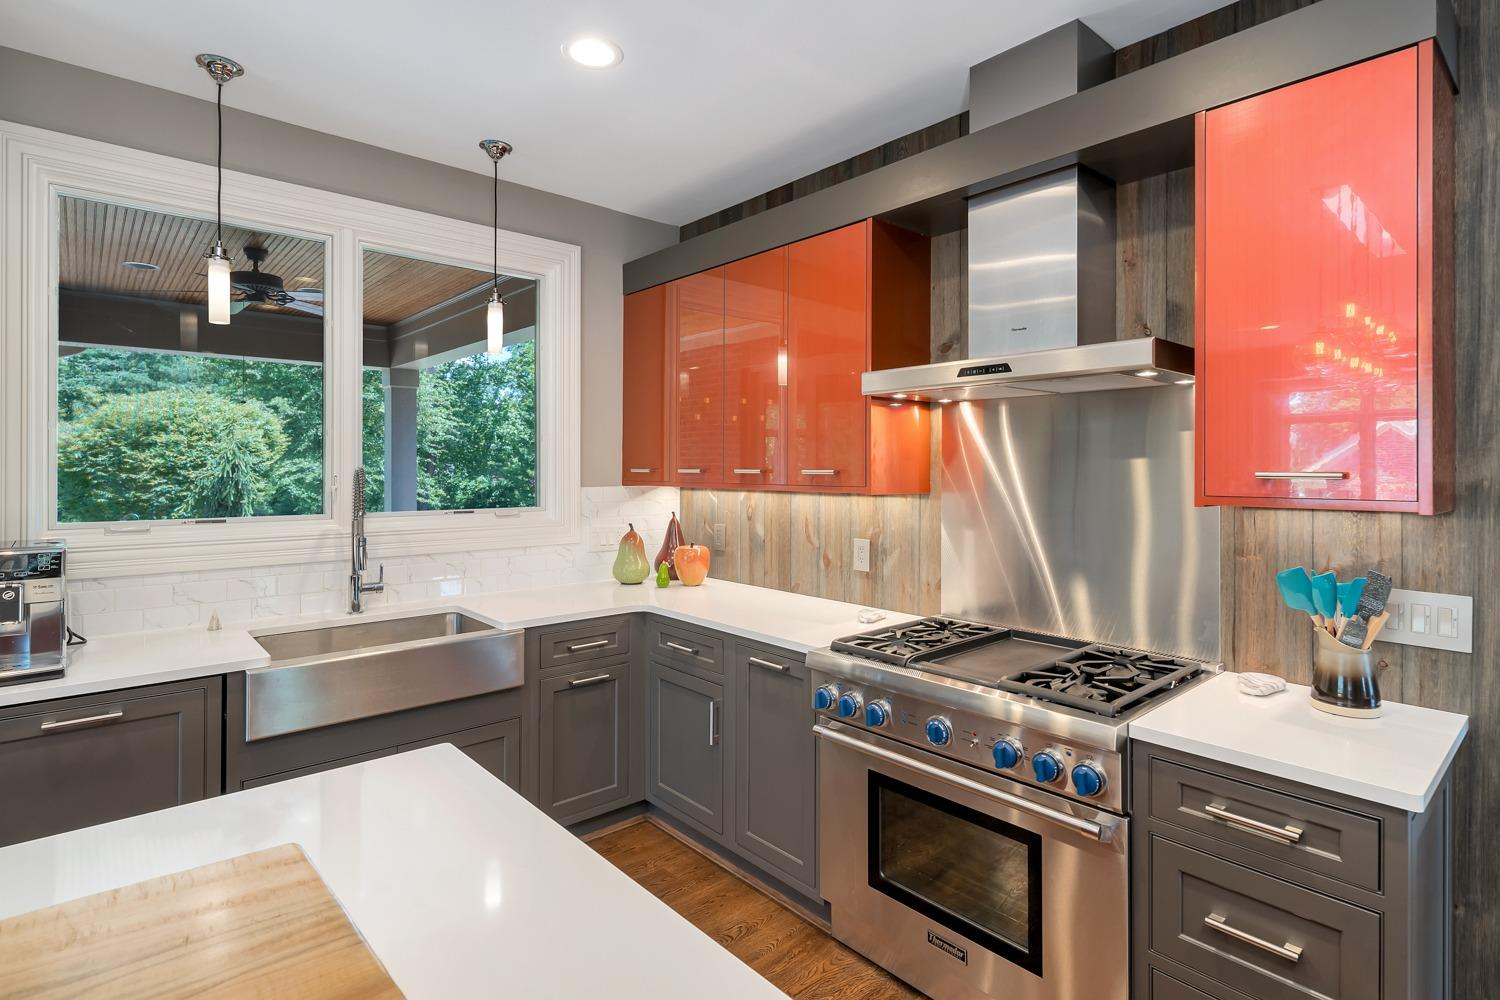 Kitchen features Thermador range with griddle, LED lighting under cabinets, and oversized windows above sink.